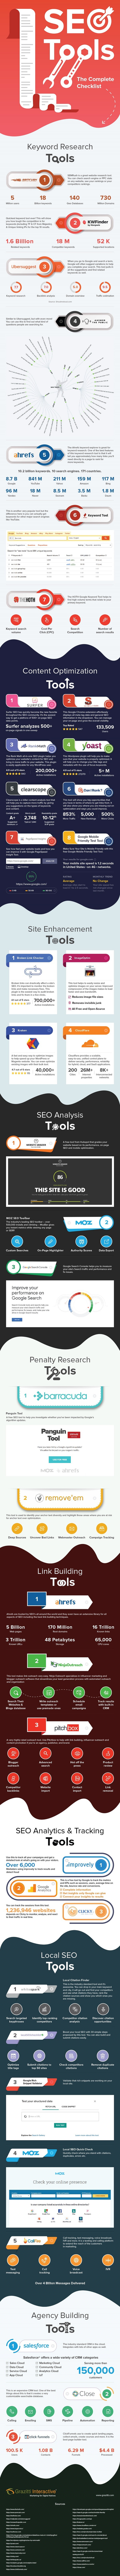 The Complete List of SEO Tools 2020[Infographic]